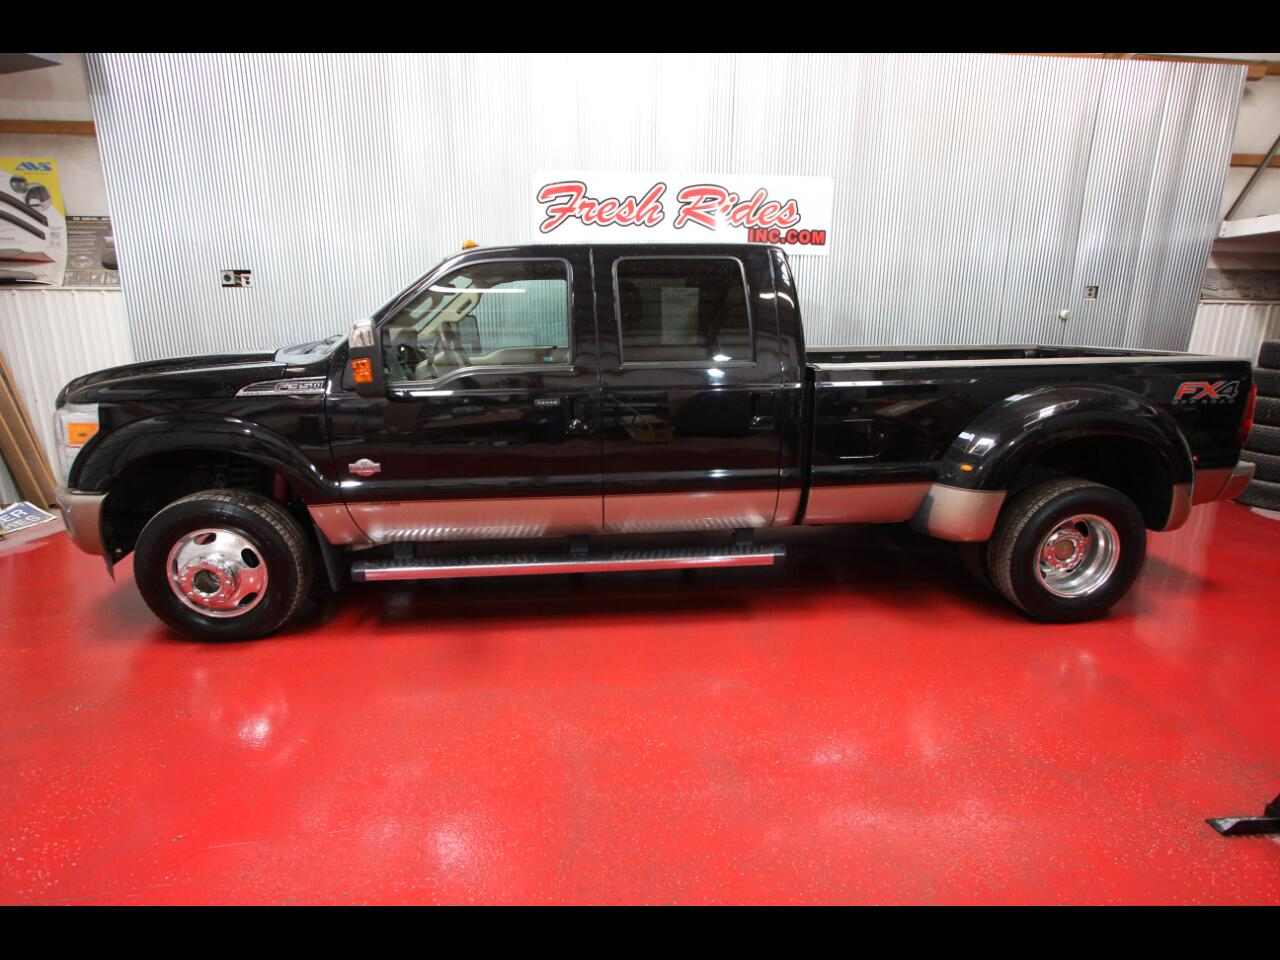 "Ford Super Duty F-350 DRW 4WD Crew Cab 172"" King Ranch 2012"